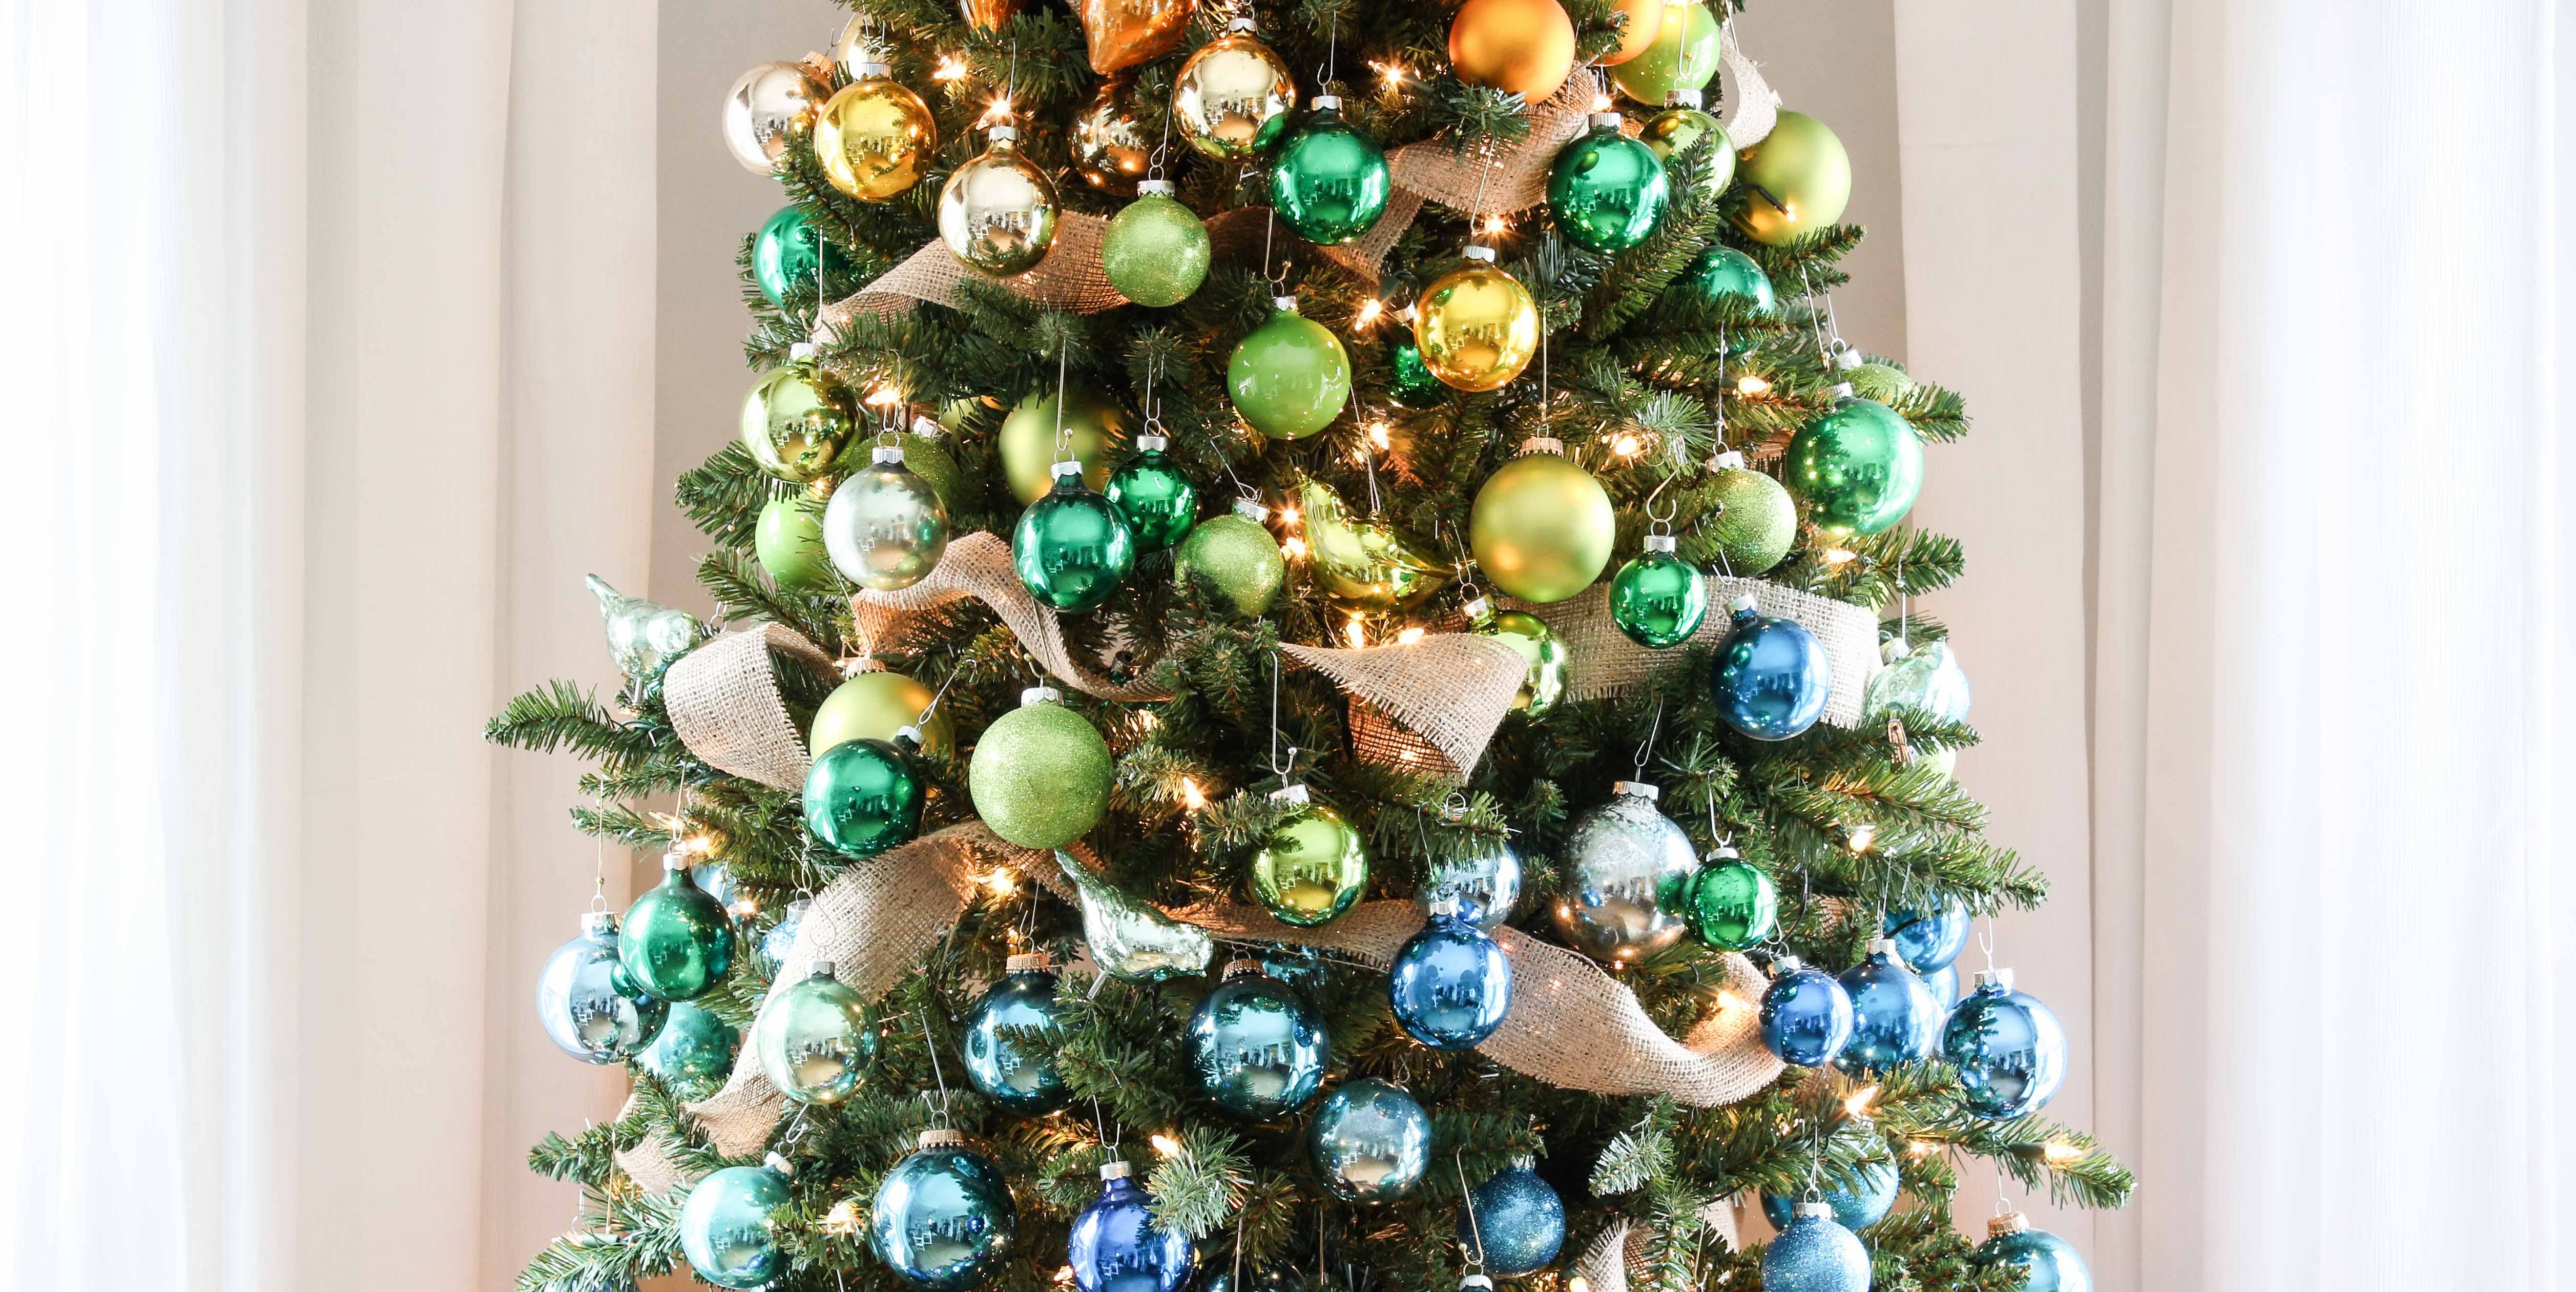 40 Decorating Ideas That'll Have You Rockin' Around The Christmas Tree